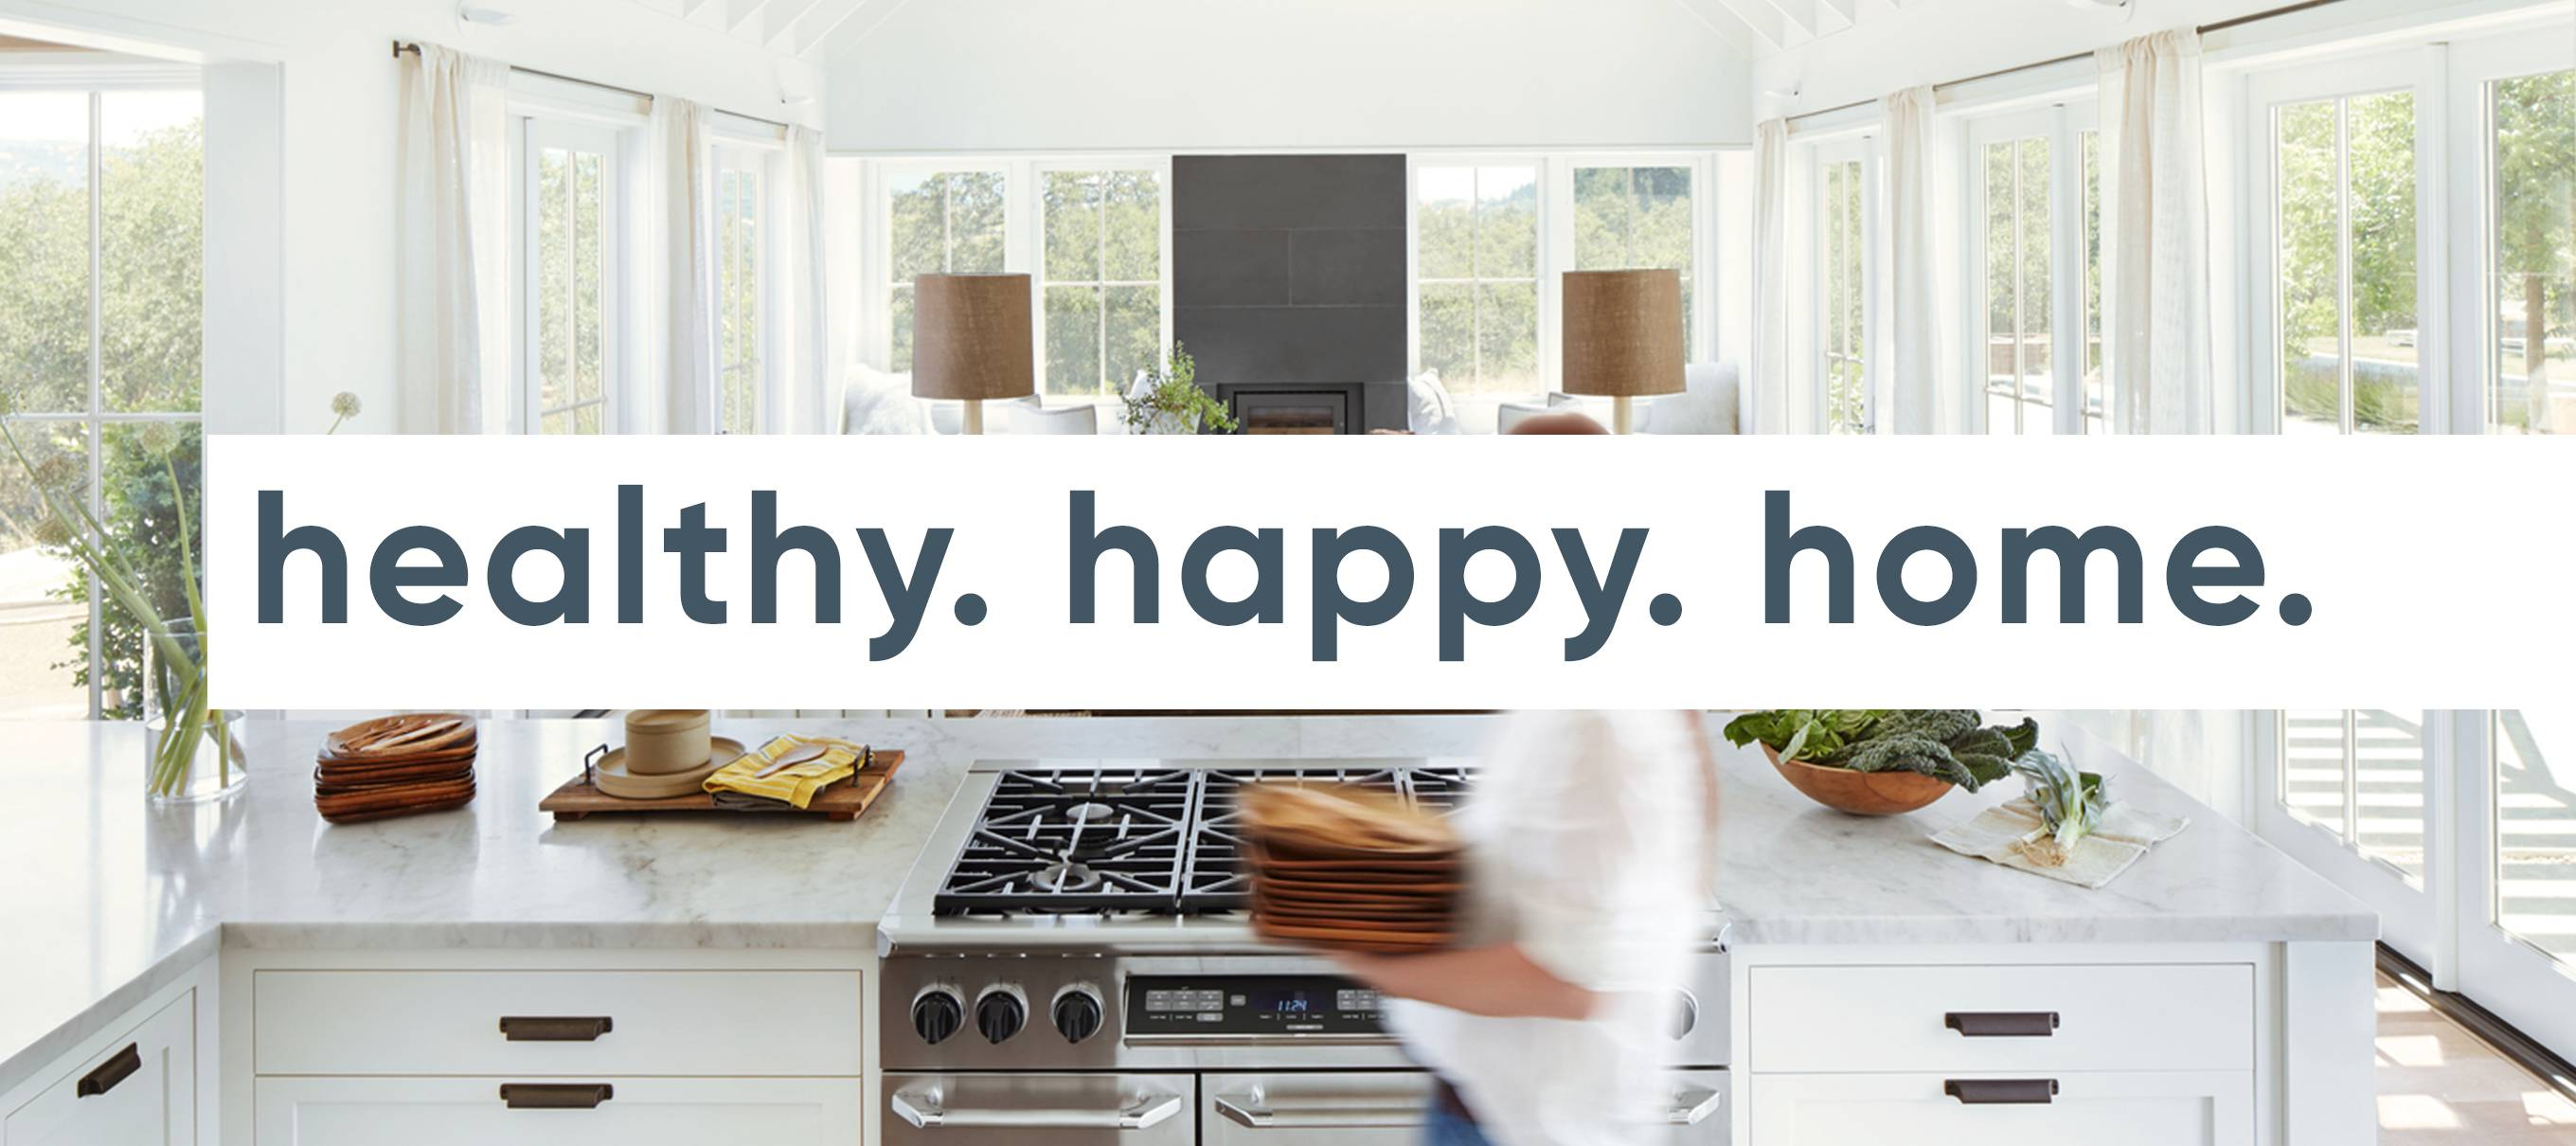 LatestHomeGoods :: healthy. happy. home.